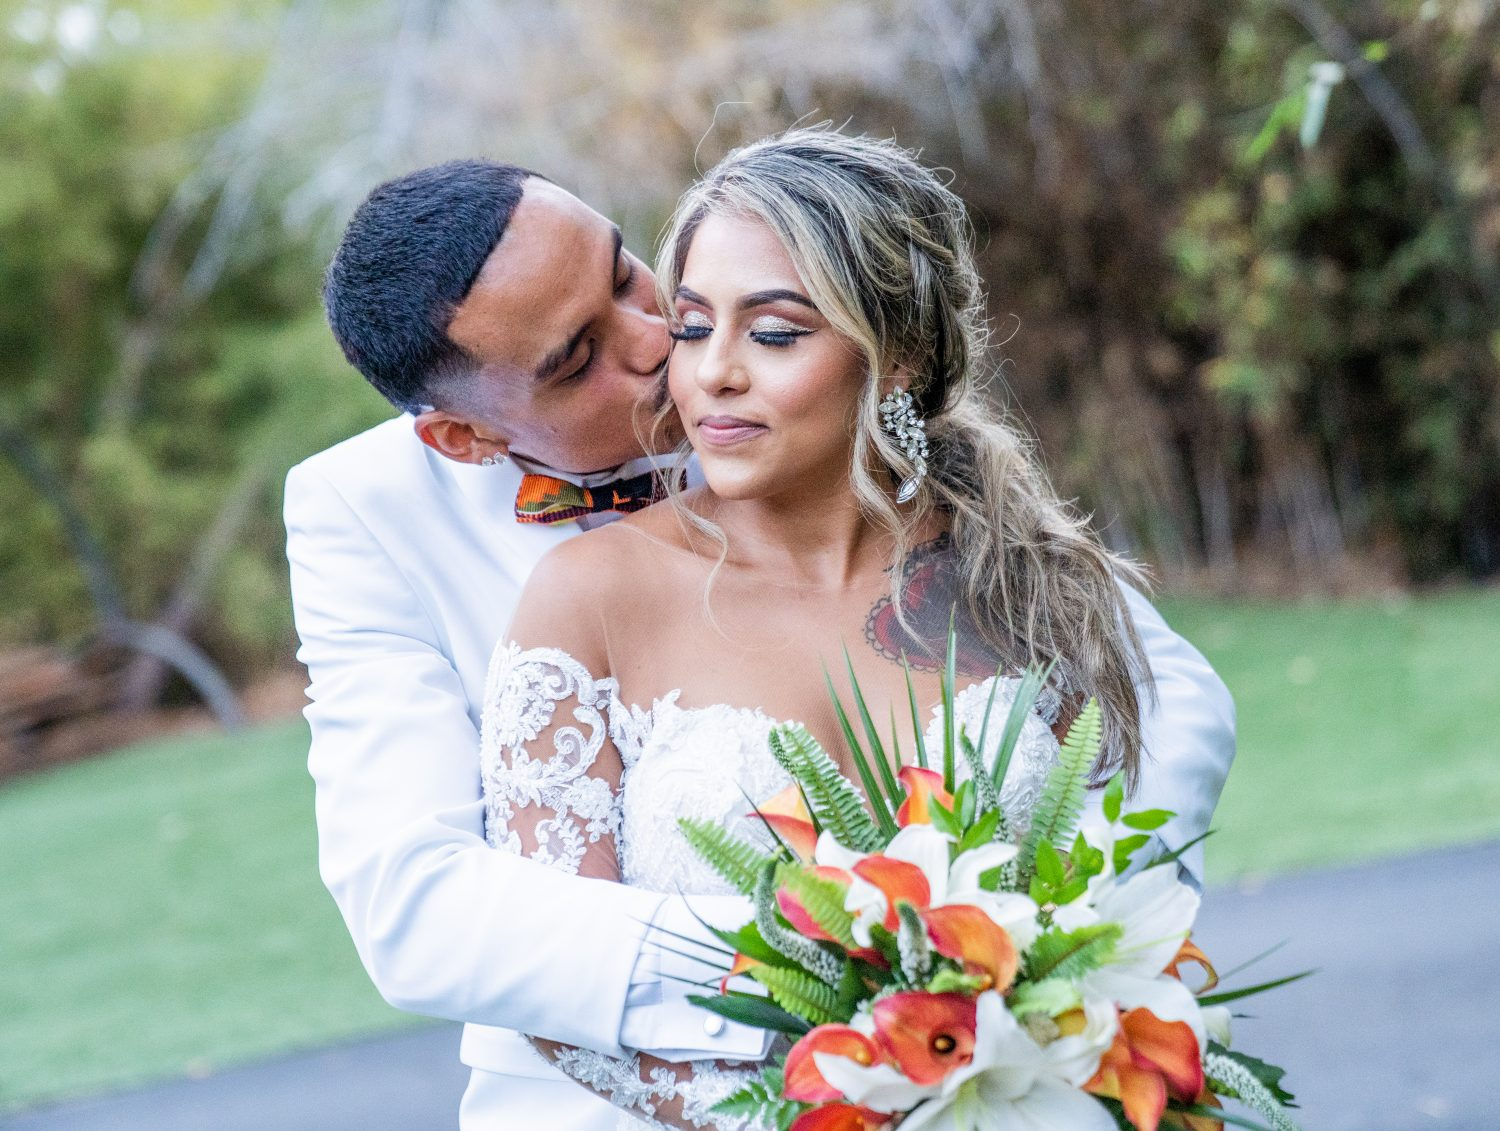 Paradise Falls Oceanside Wedding By Image In Love